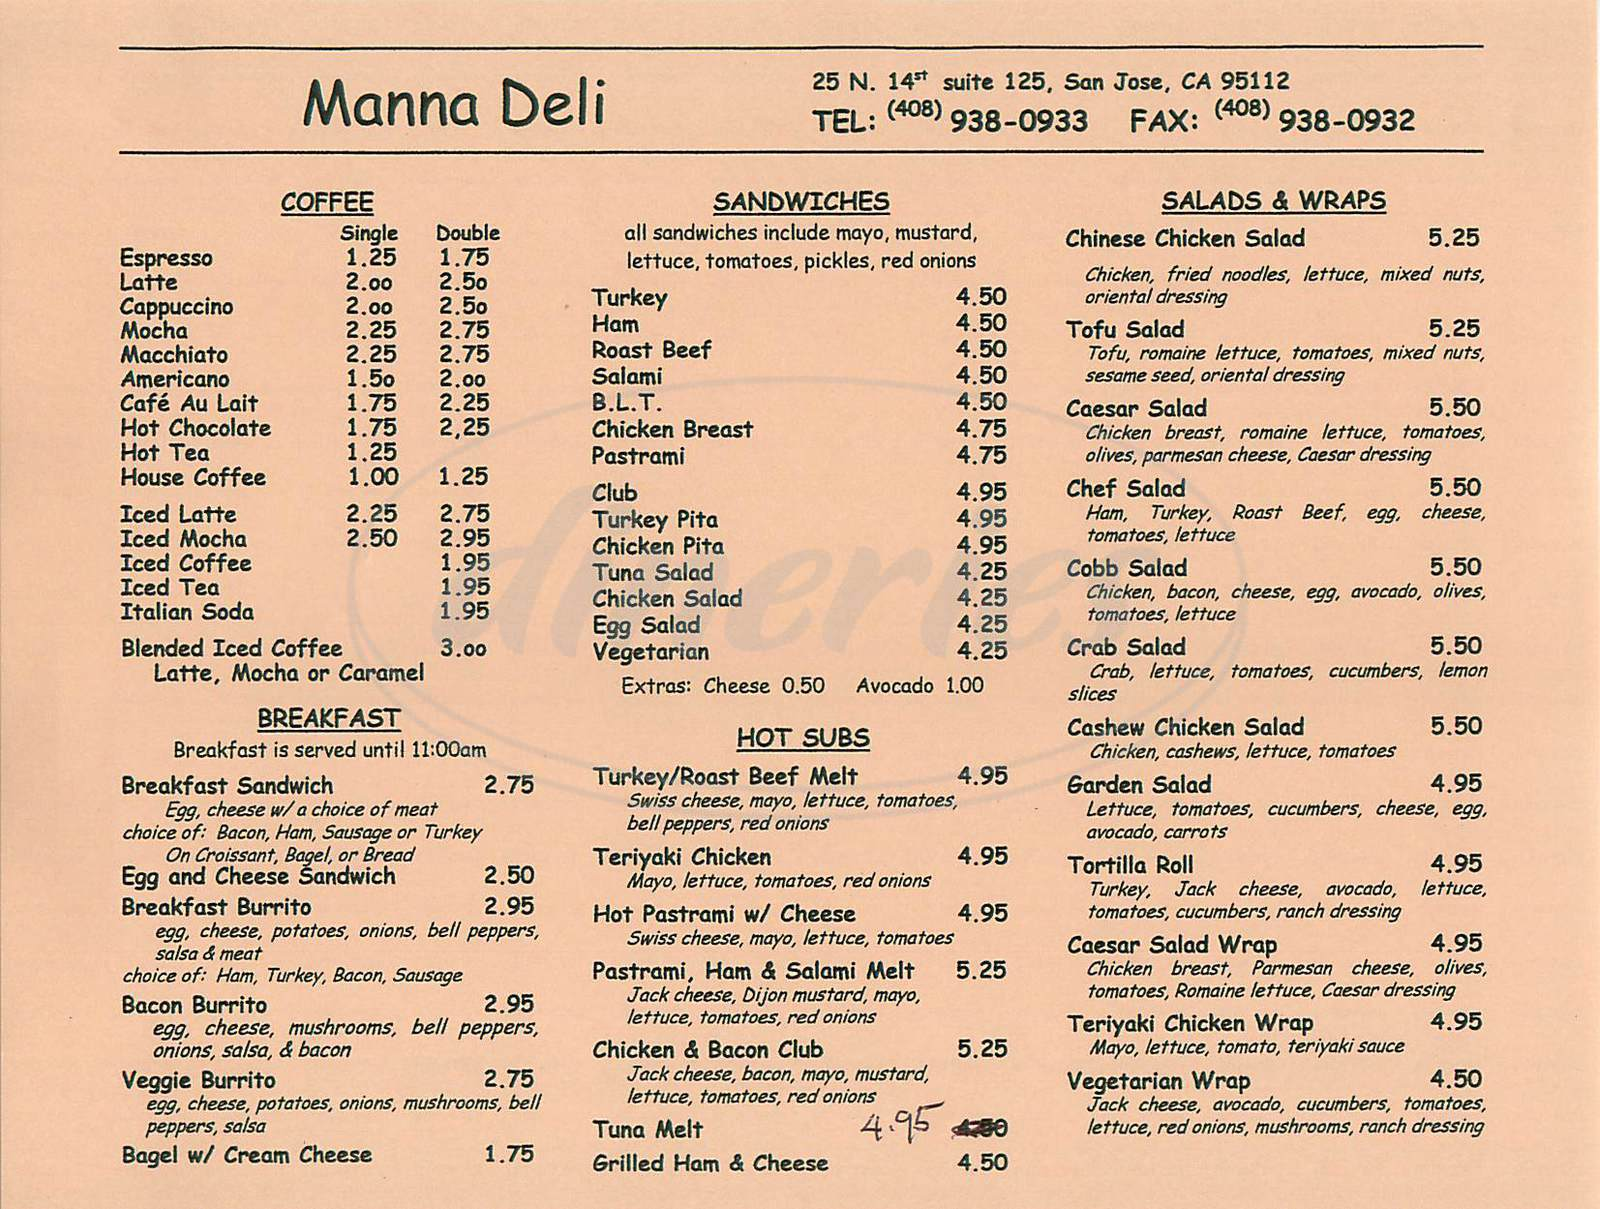 menu for Manna Deli